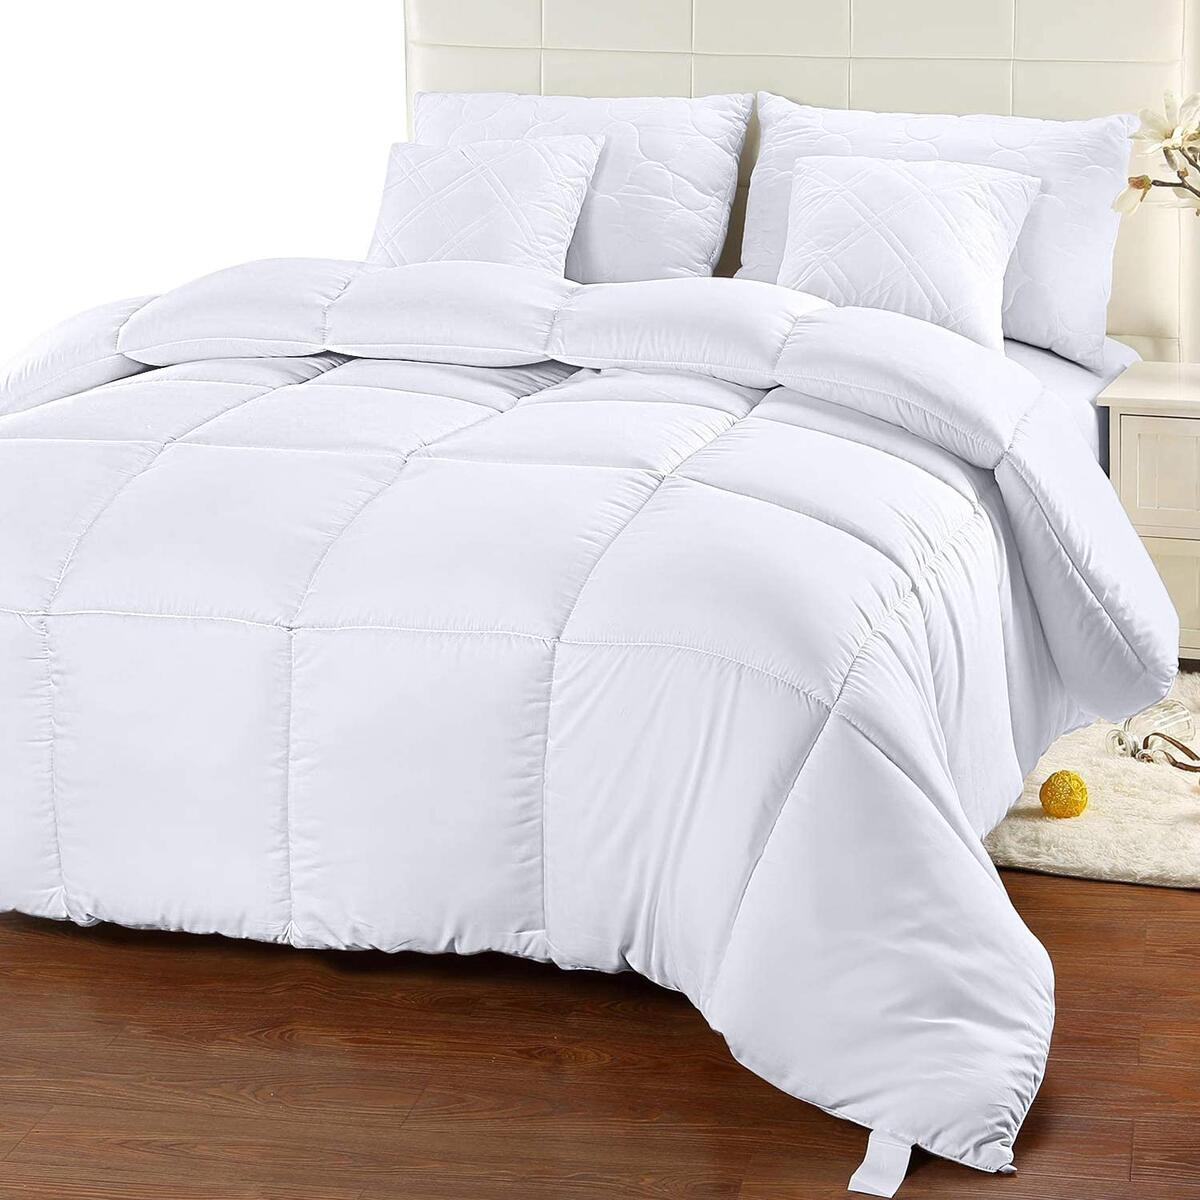 Comforter Duvet Insert - Quilted Comforter with Corner Tabs - Box Stitched Down Alternative Comforter (King, White)